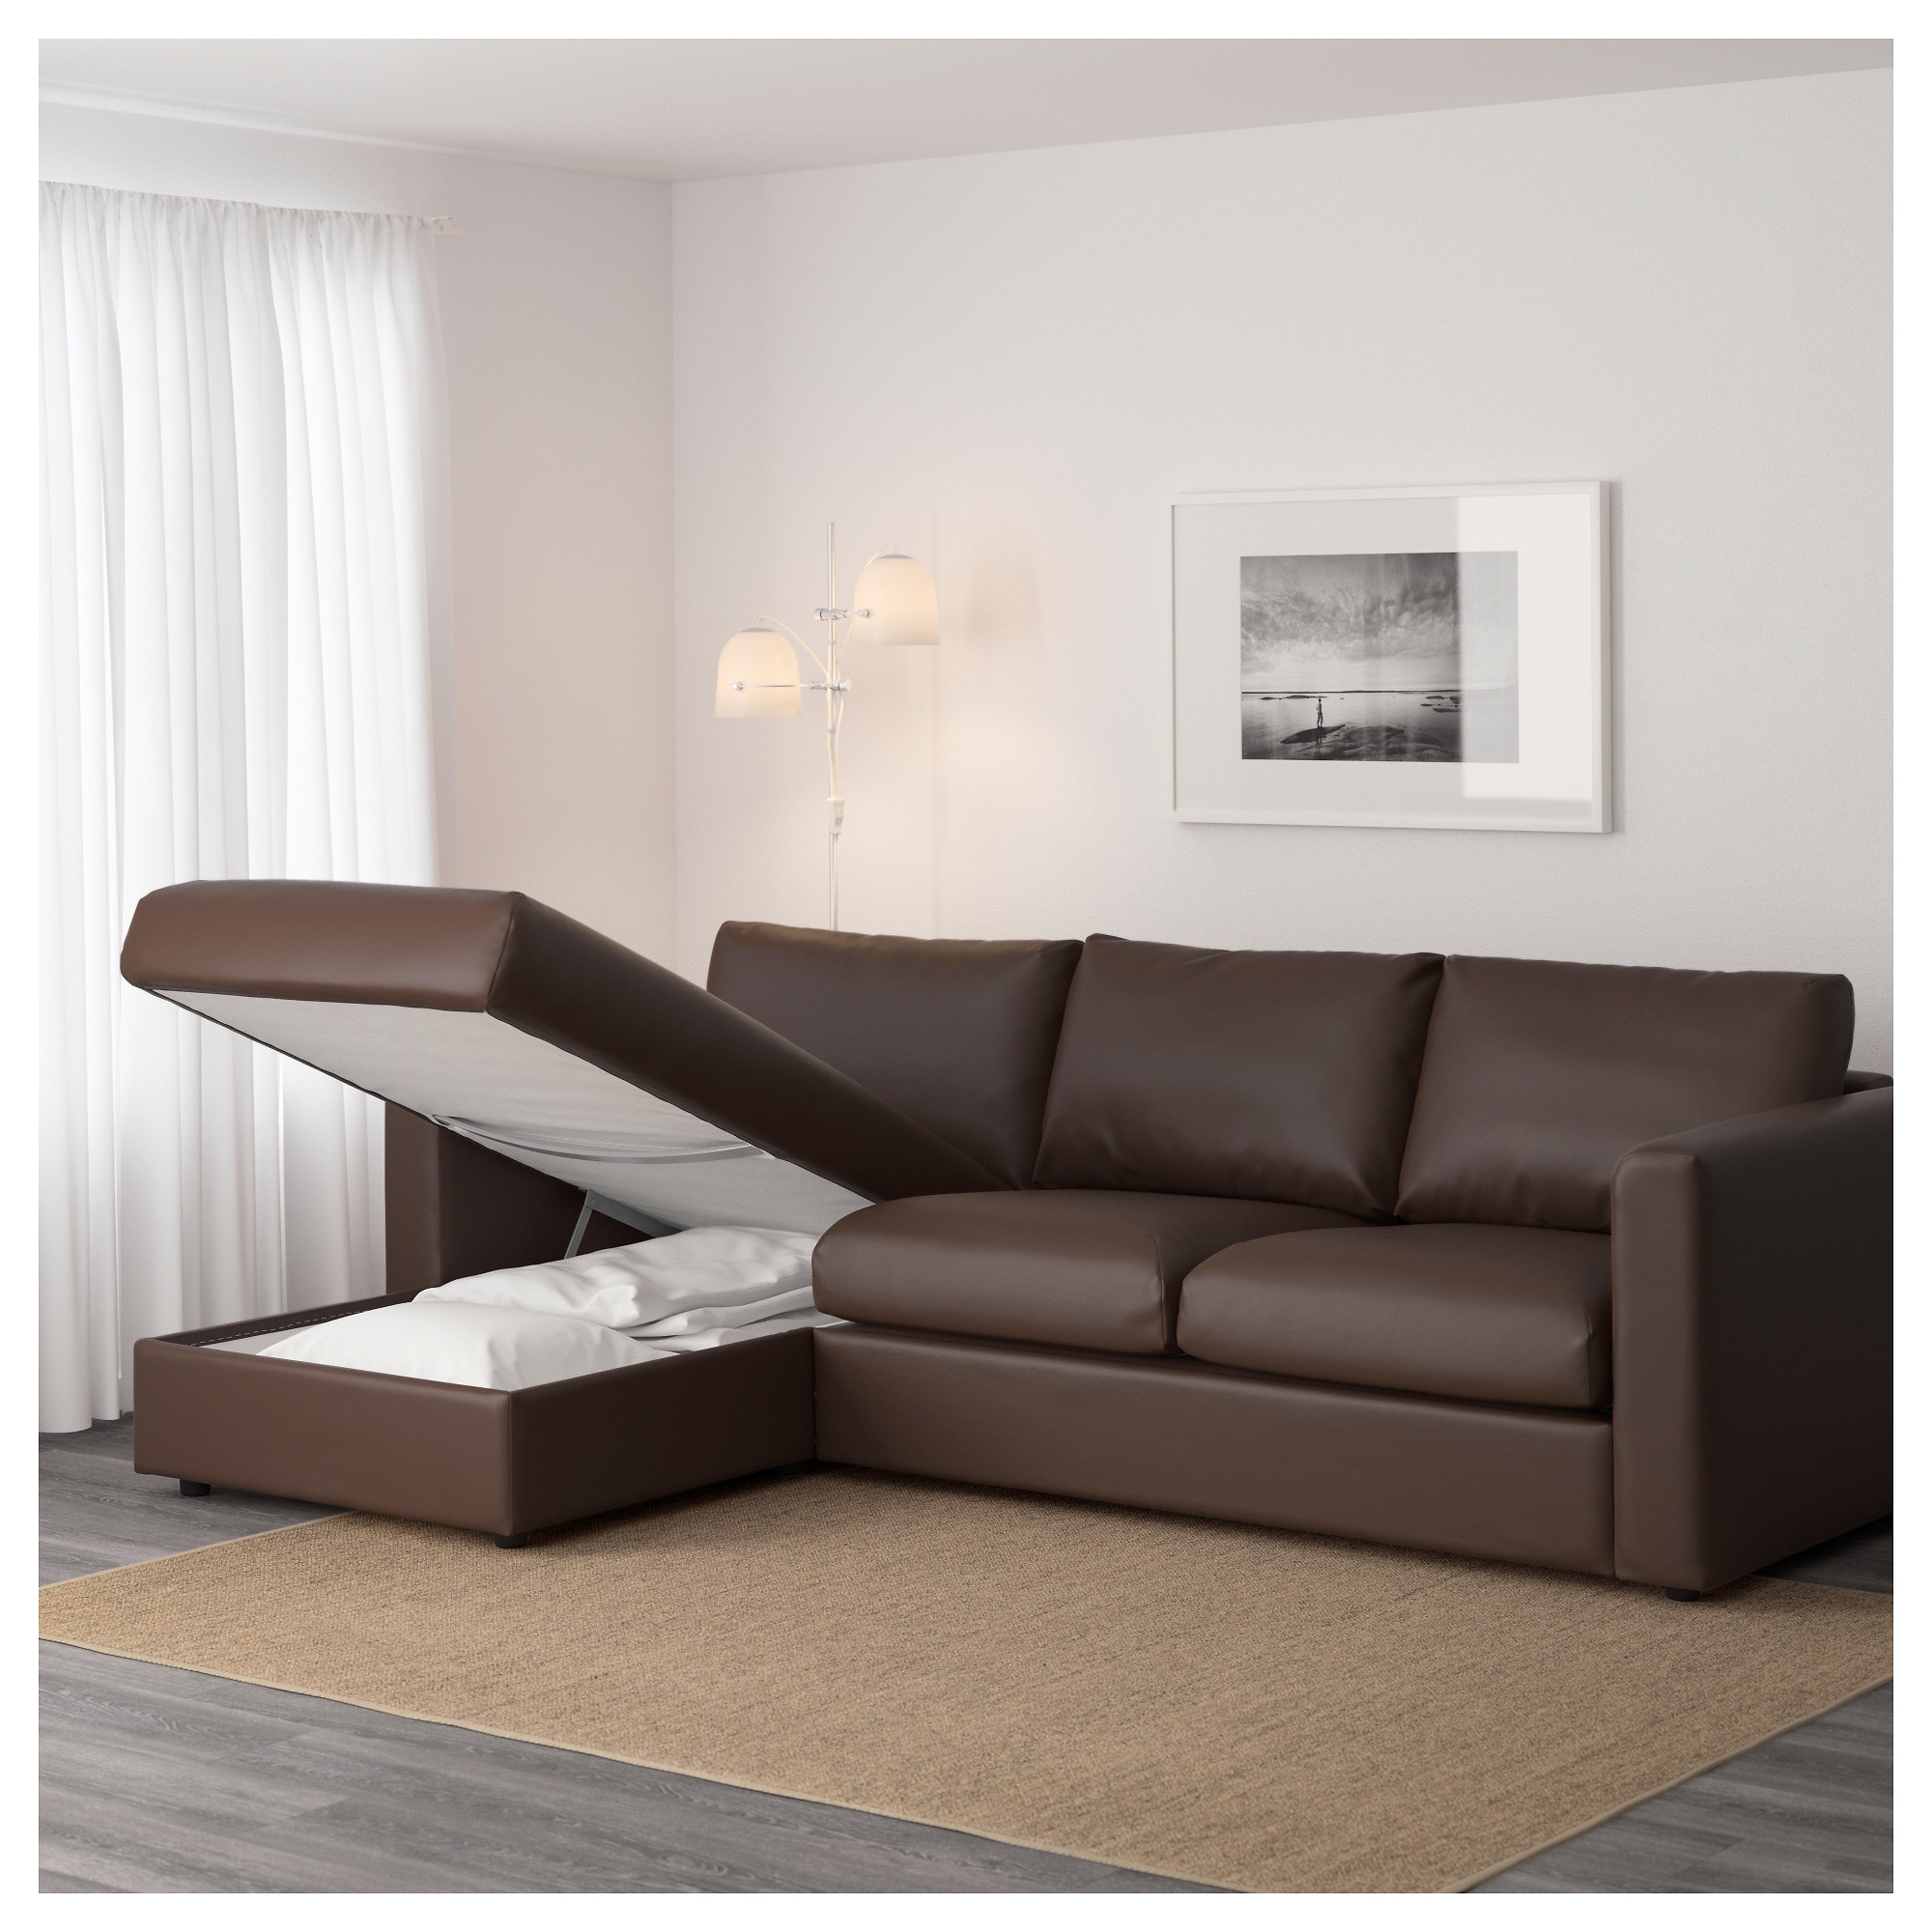 chaise couch vimle sofa - with chaise/gunnared medium gray - ikea URYHXAT